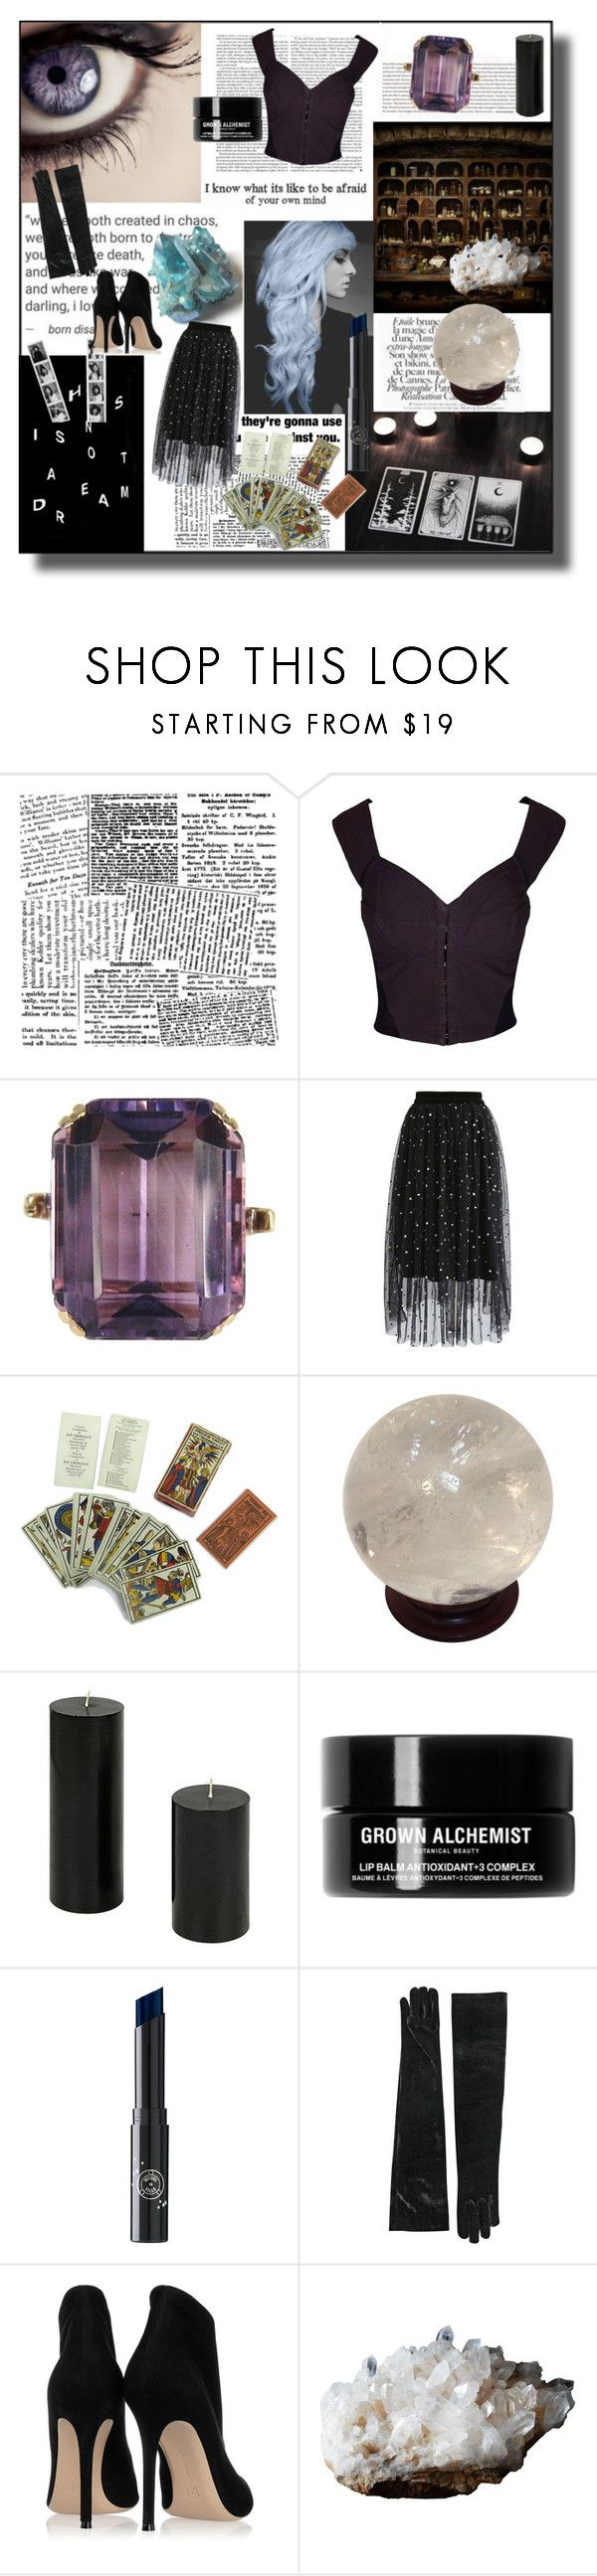 """""""What is your question for the universe?"""" by feralkind ❤ liked on Polyvore featuring xO Design, Awake, Dolce&Gabbana, Chicwish, Zara, Grown Alchemist, Rituel de Fille and Gianvito Rossi"""